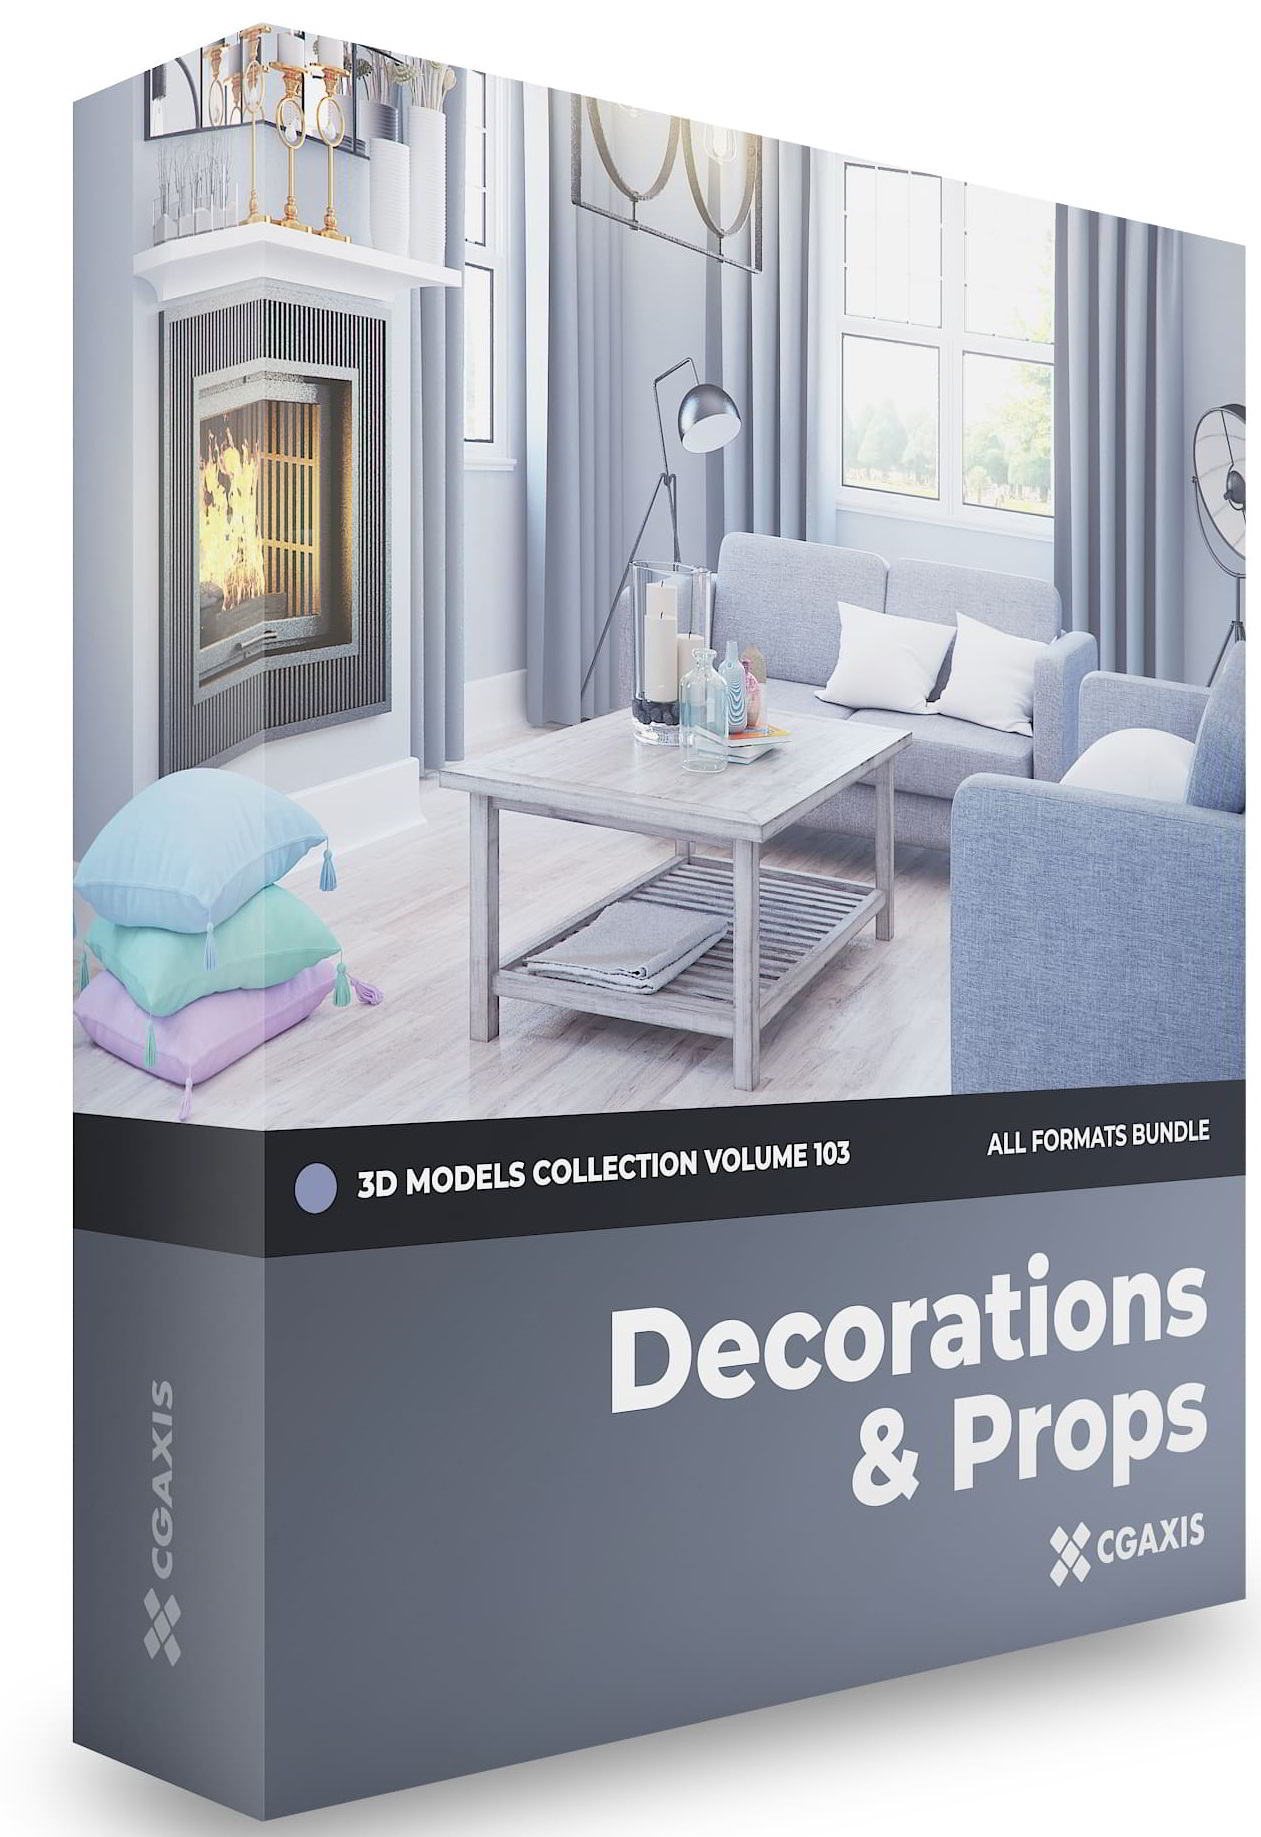 CGAxis Decorations 3D Models Collection Volume 103 free download